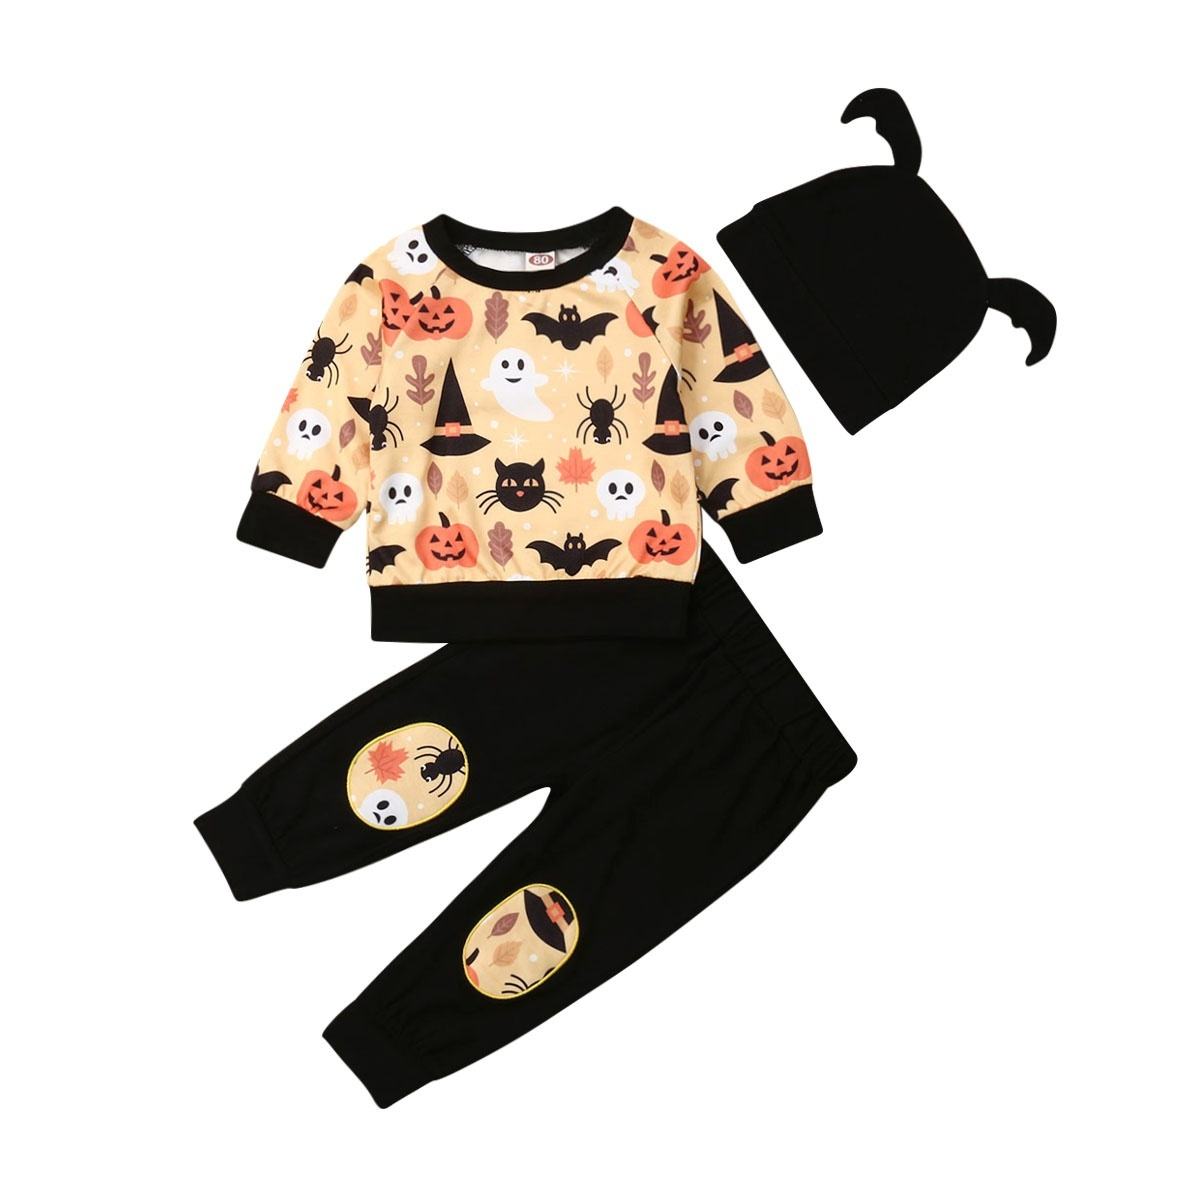 Halloween Day T For Toddler Kids Baby Boy Girl Autumn